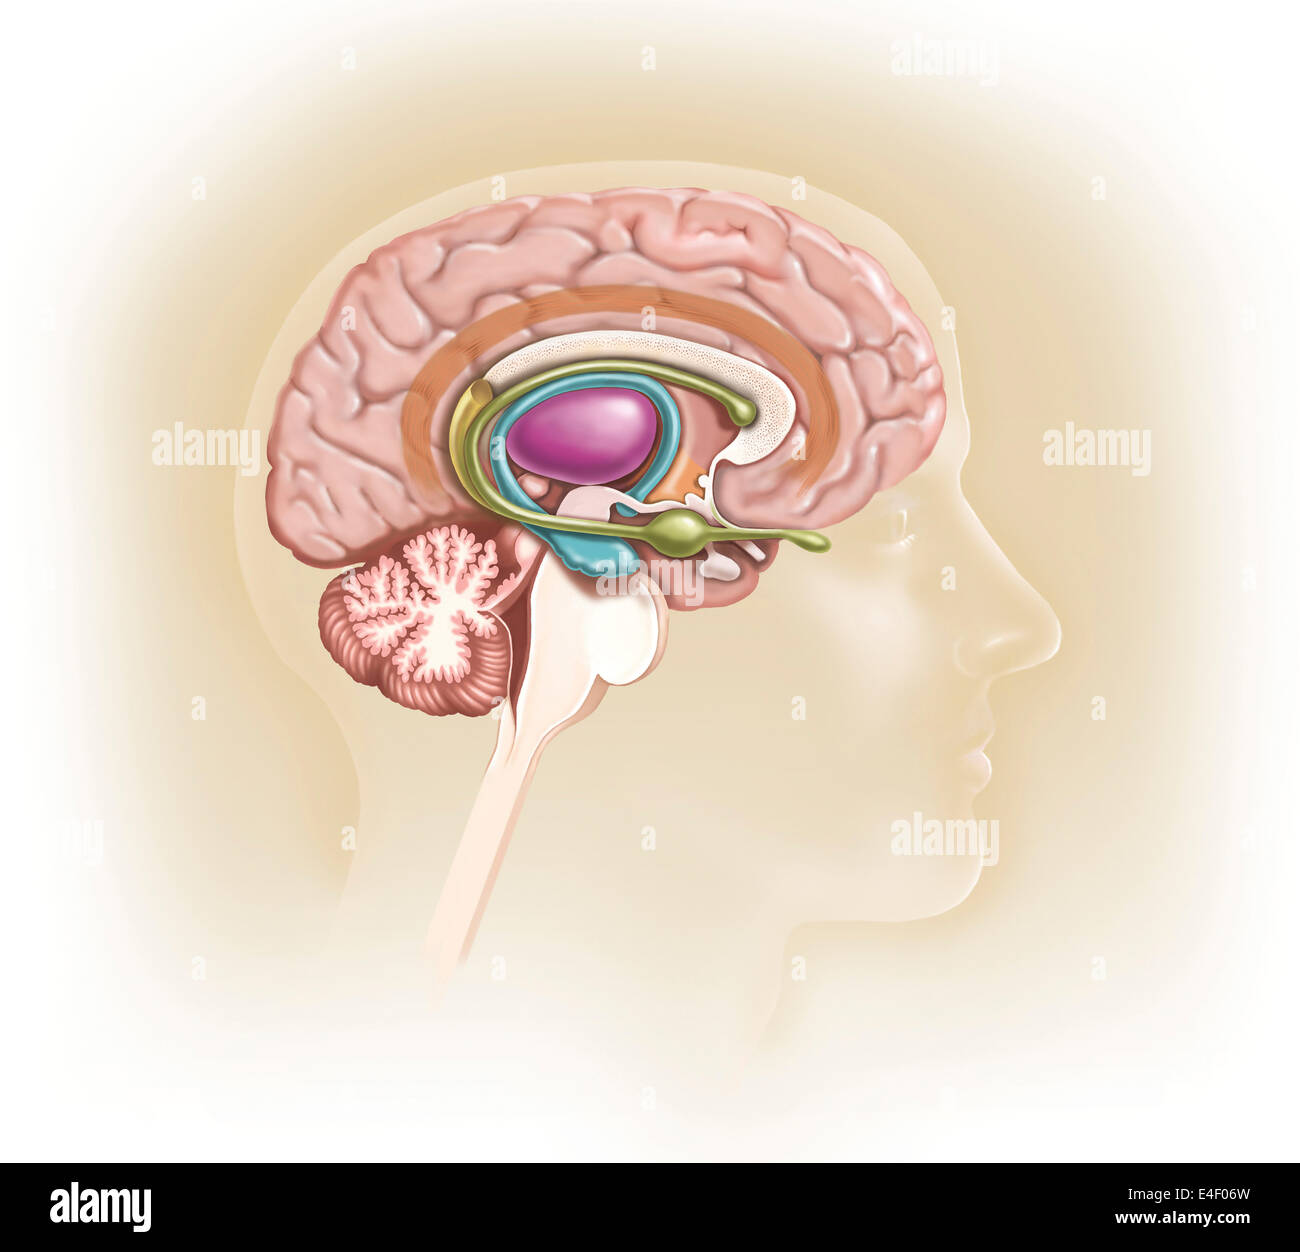 Sagittal view of human brain showing the limbic system Stock Photo ...